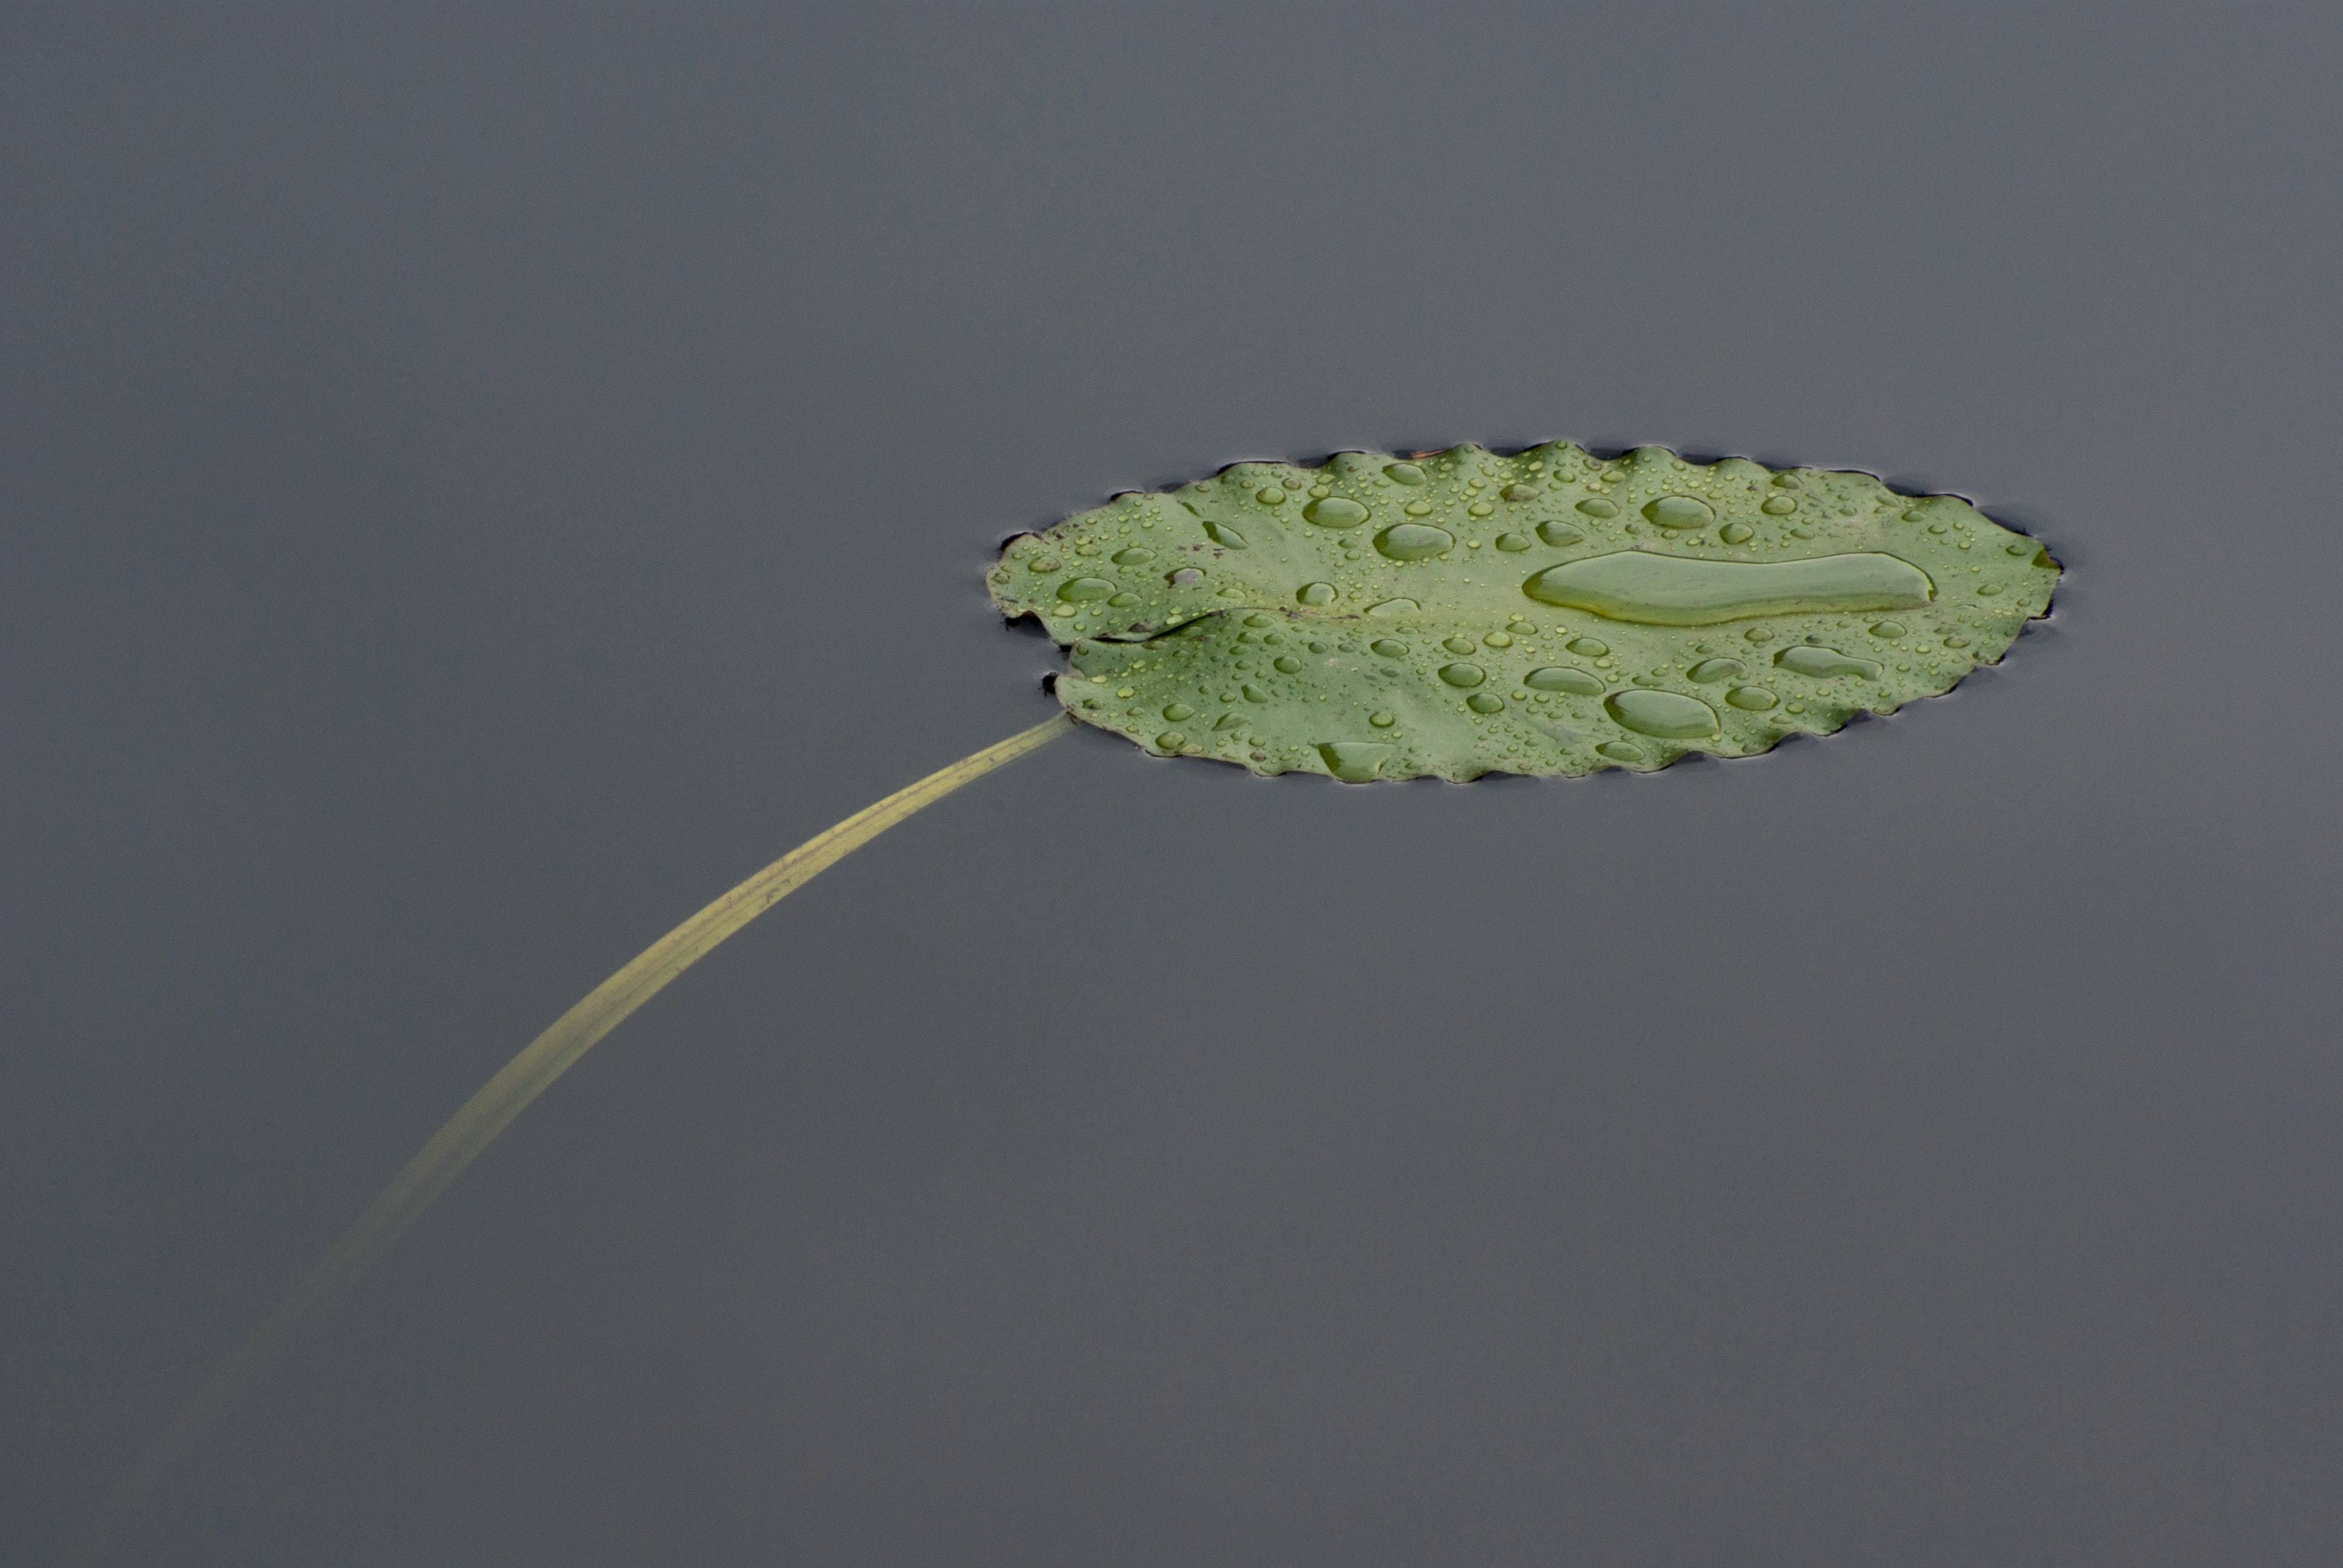 Lily pad with water droplets floats atop a still lake